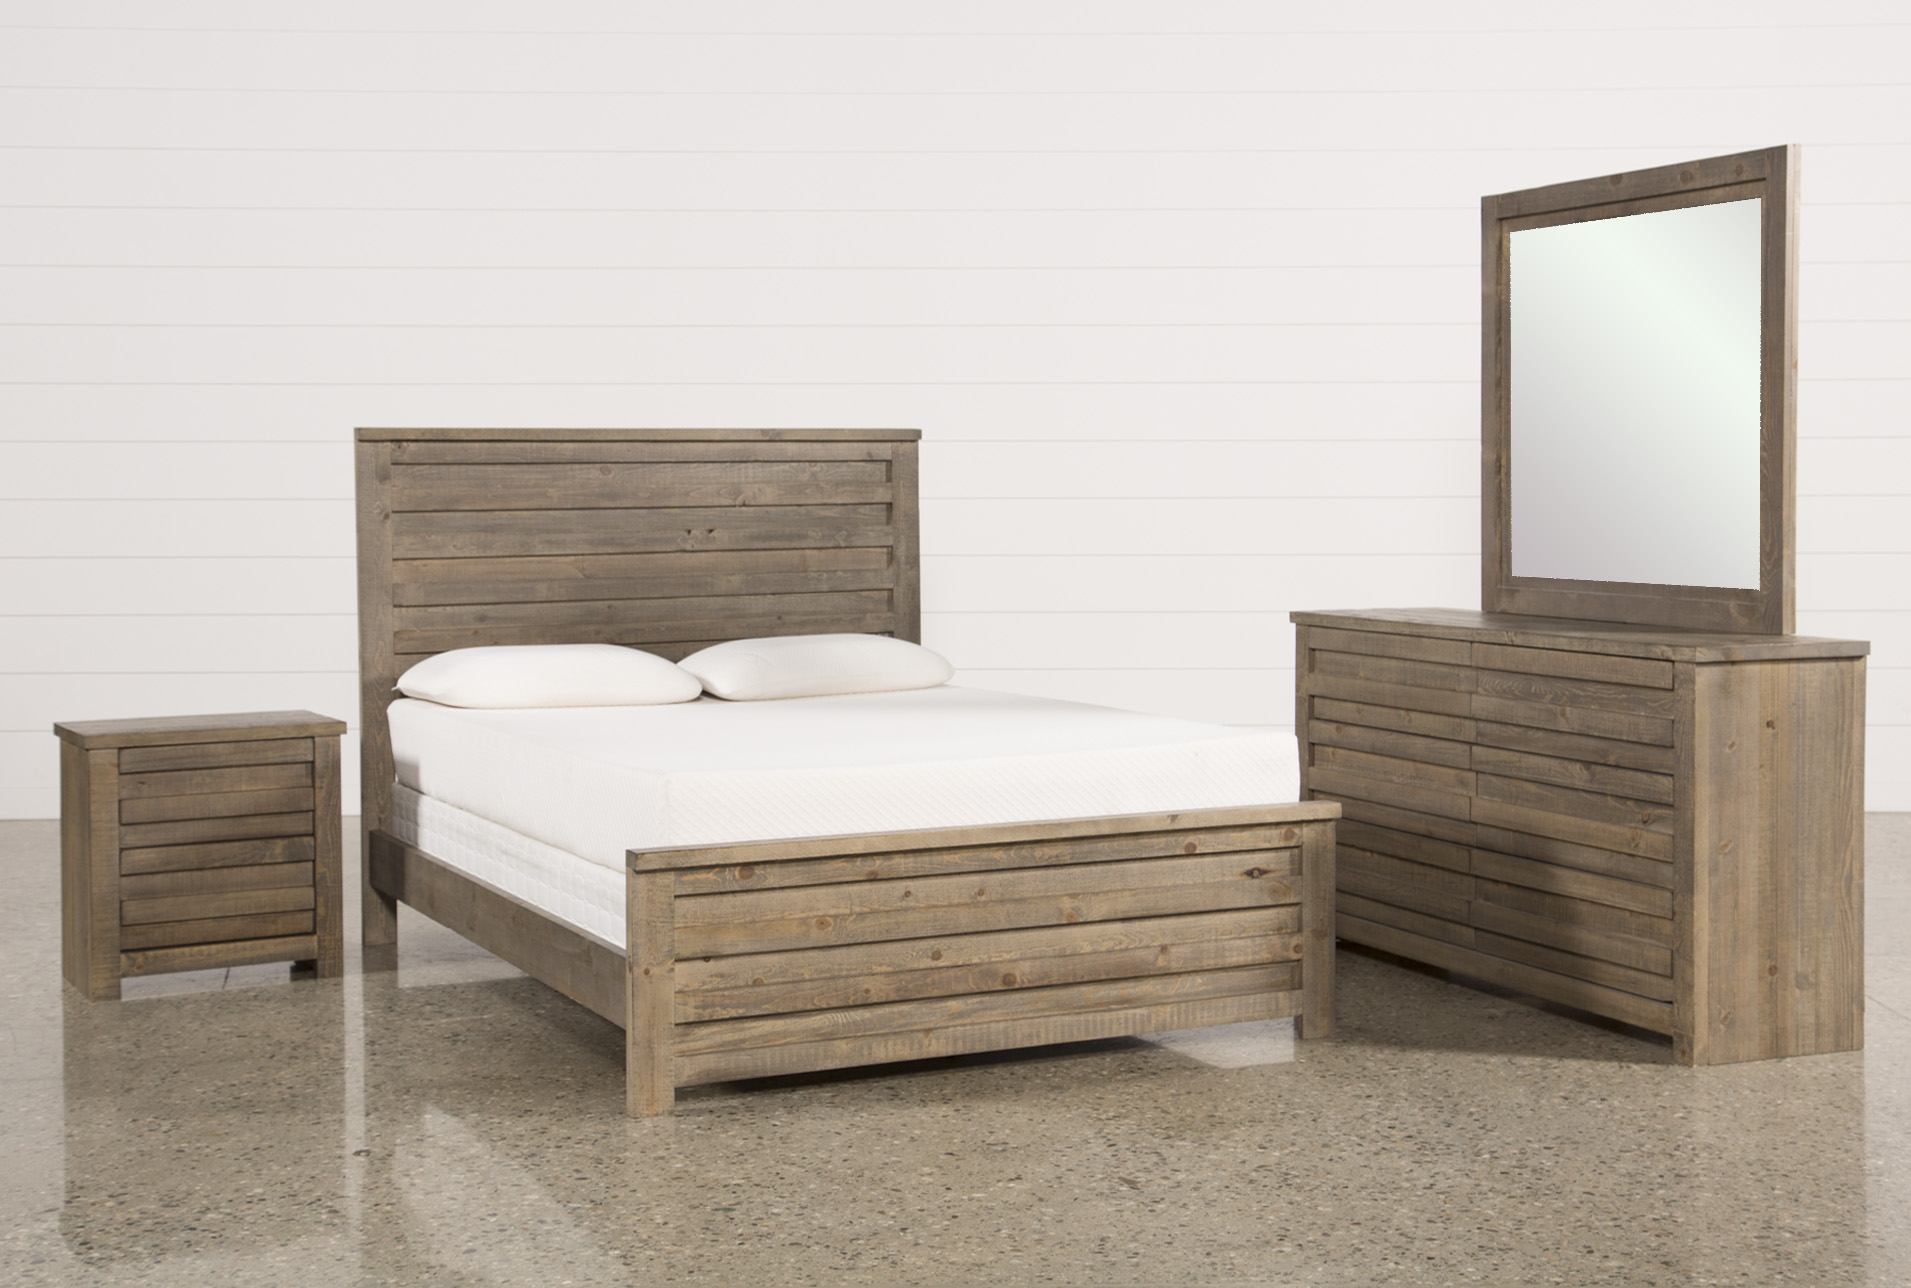 Simple Bedroom Set Furniture Design